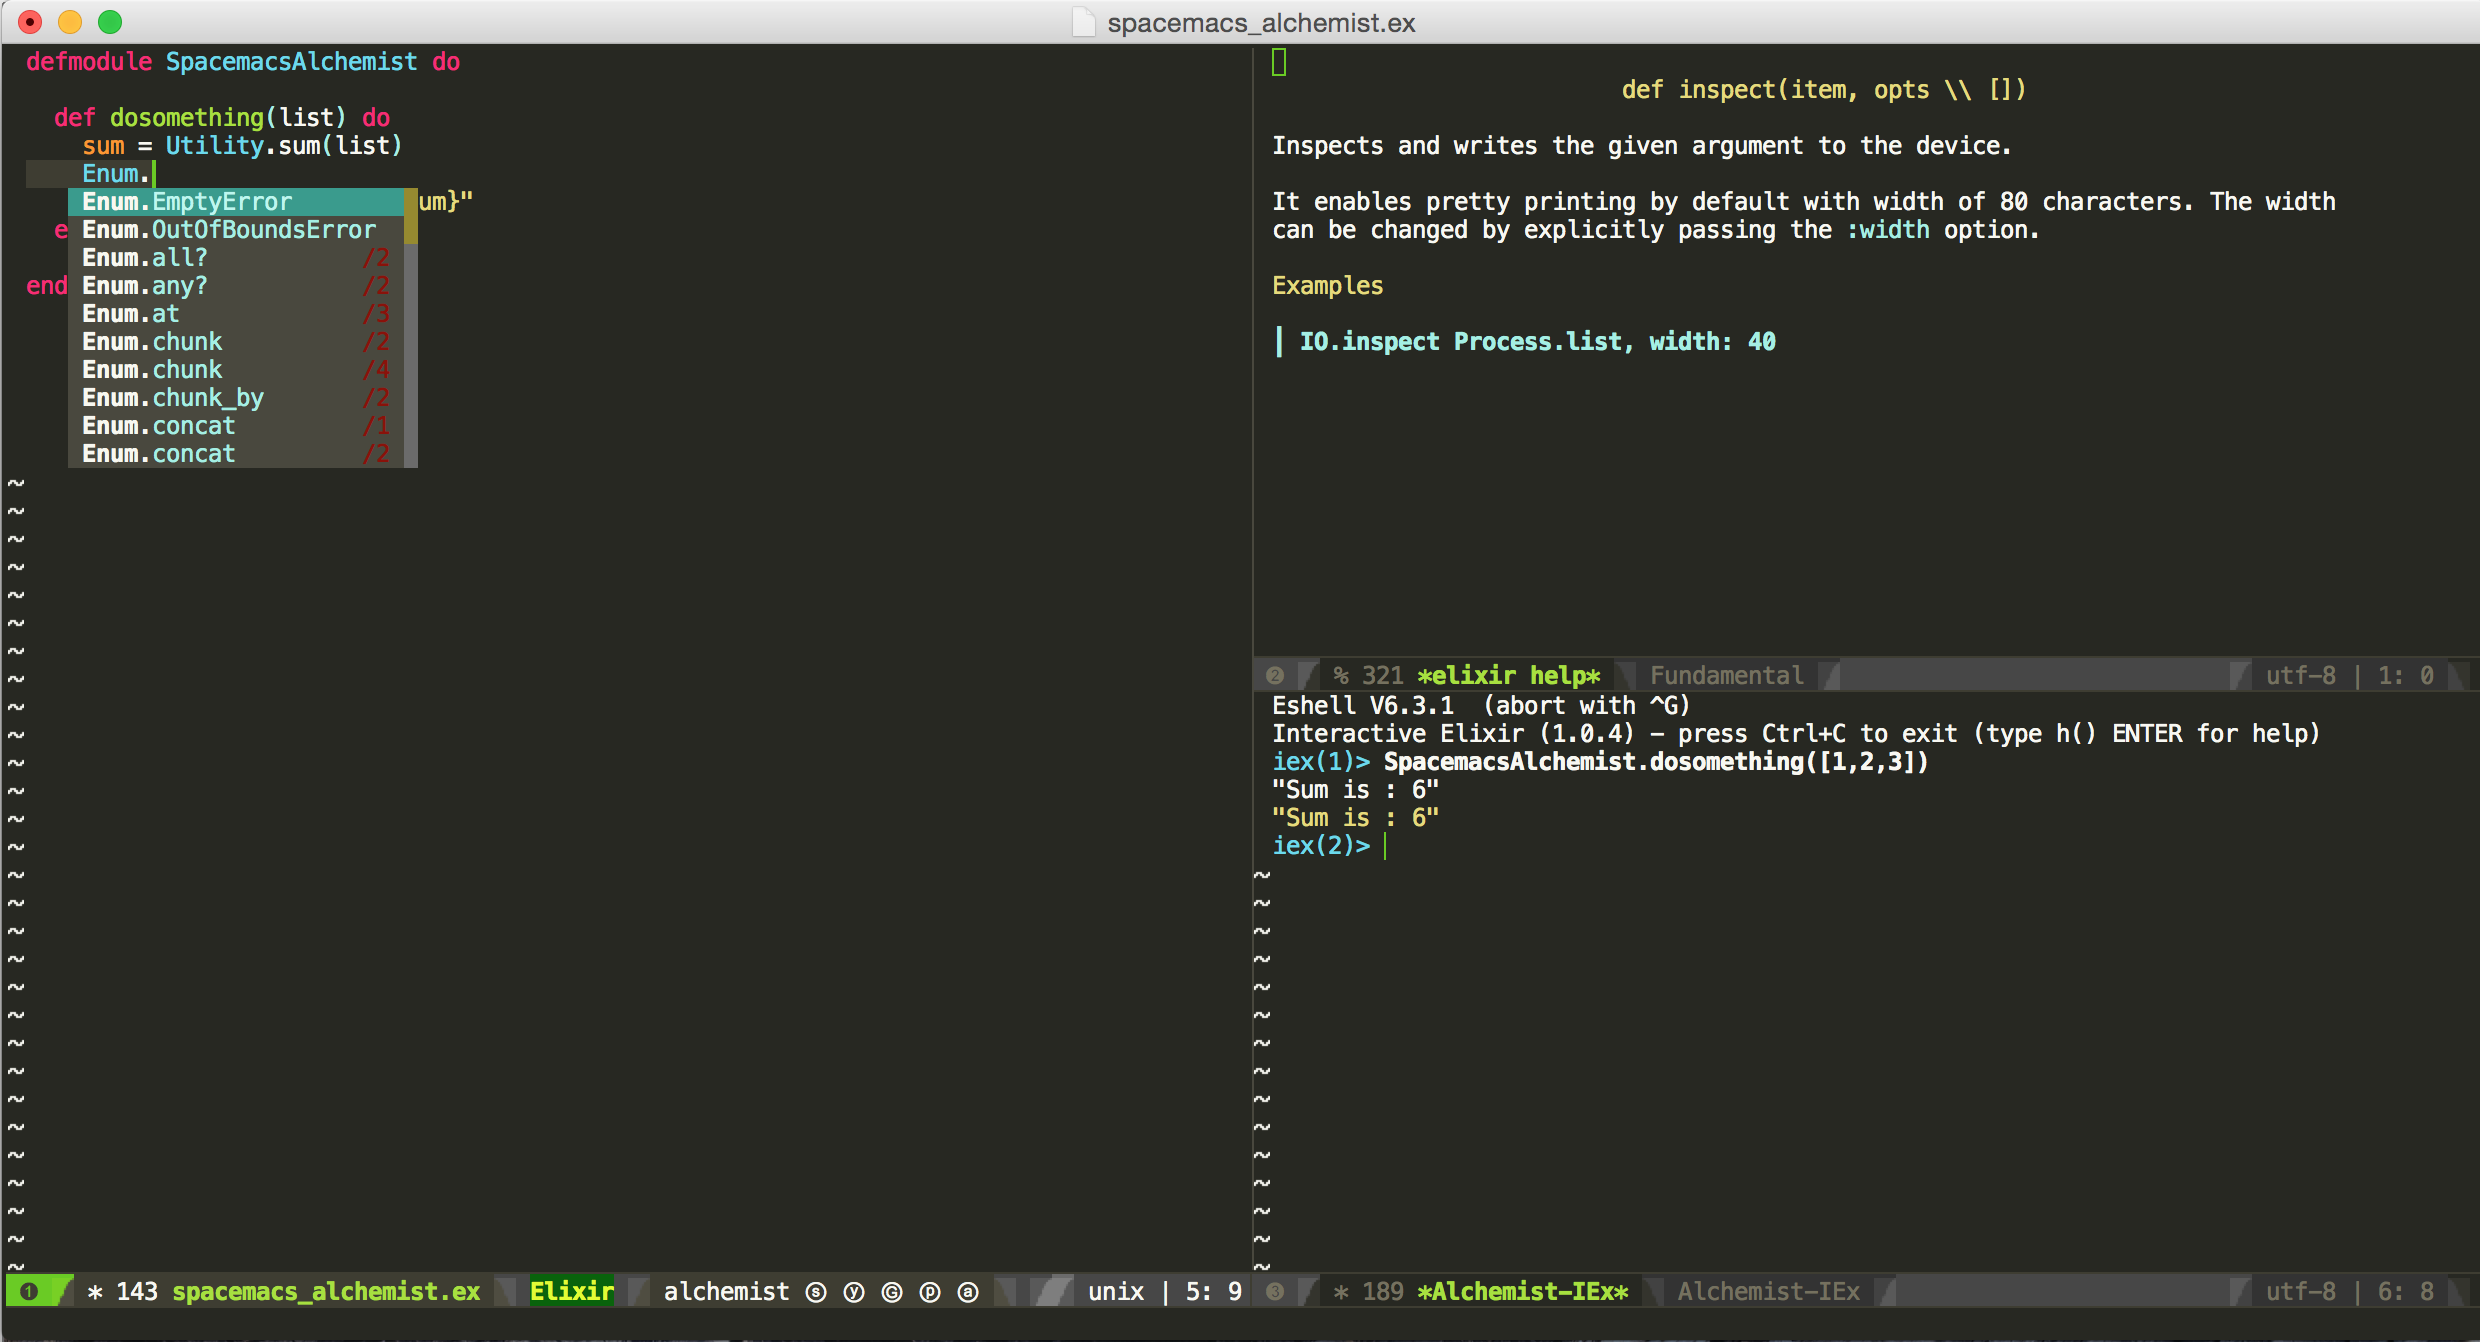 spacemacs and alchemist to make elixir of immortality